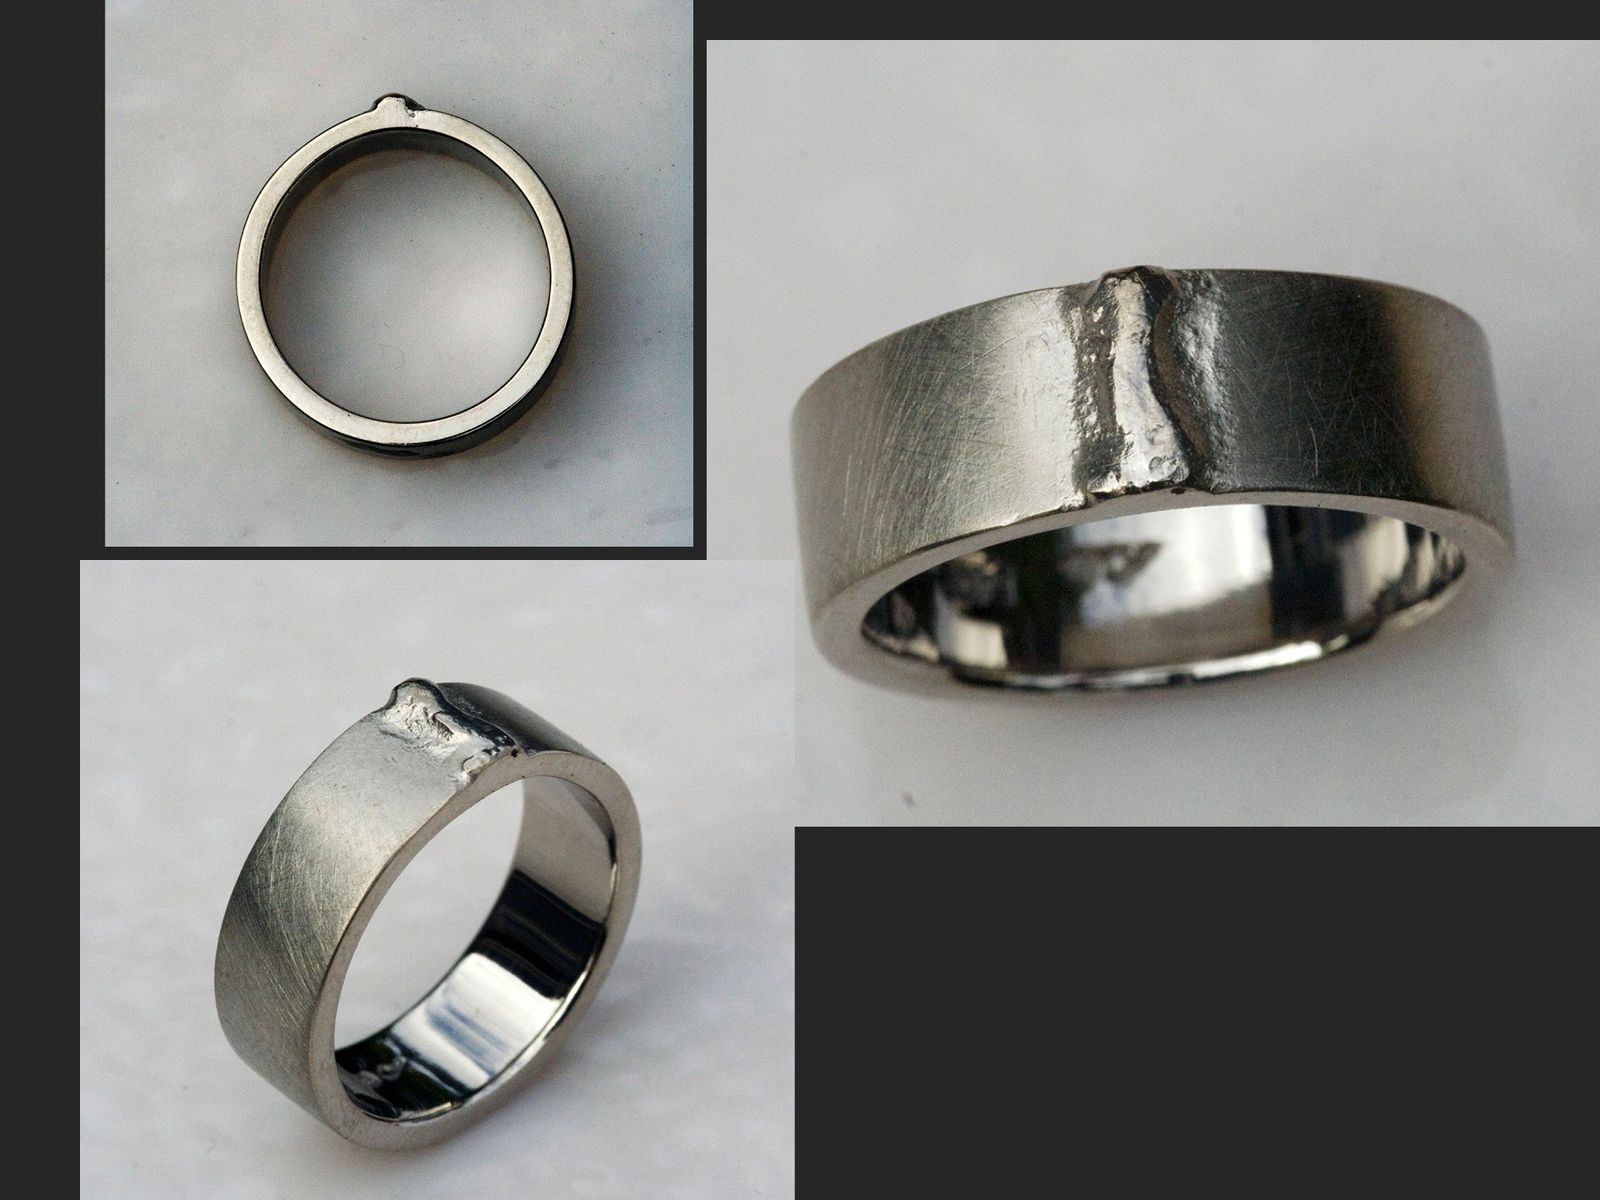 Custom Wite Gold Weld Bead Wedding Band By Cooperman Jewelry